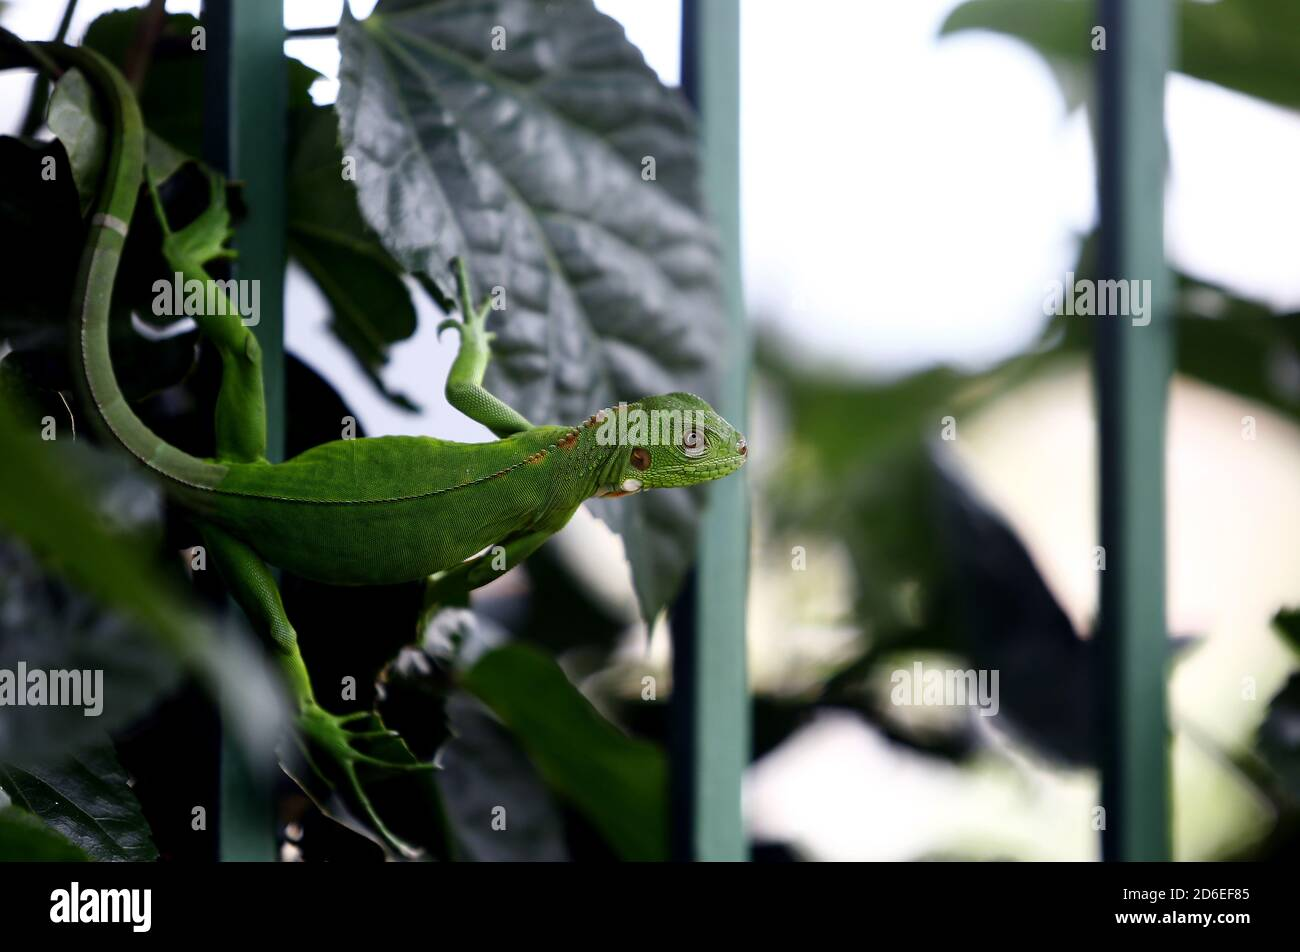 Valencia, Carabobo, Venezuela. 16th Oct, 2020. Caption:October 16, 2020. A small baby green iguana, better known as the common iguana, which belongs to the iguanidae family, walks between the fence of a house and the bushes in the garden. In Valencia, Carabobo, Venezuela - Photo: Juan Carlos Hernandez Credit: Juan Carlos Hernandez/ZUMA Wire/Alamy Live News Stock Photo